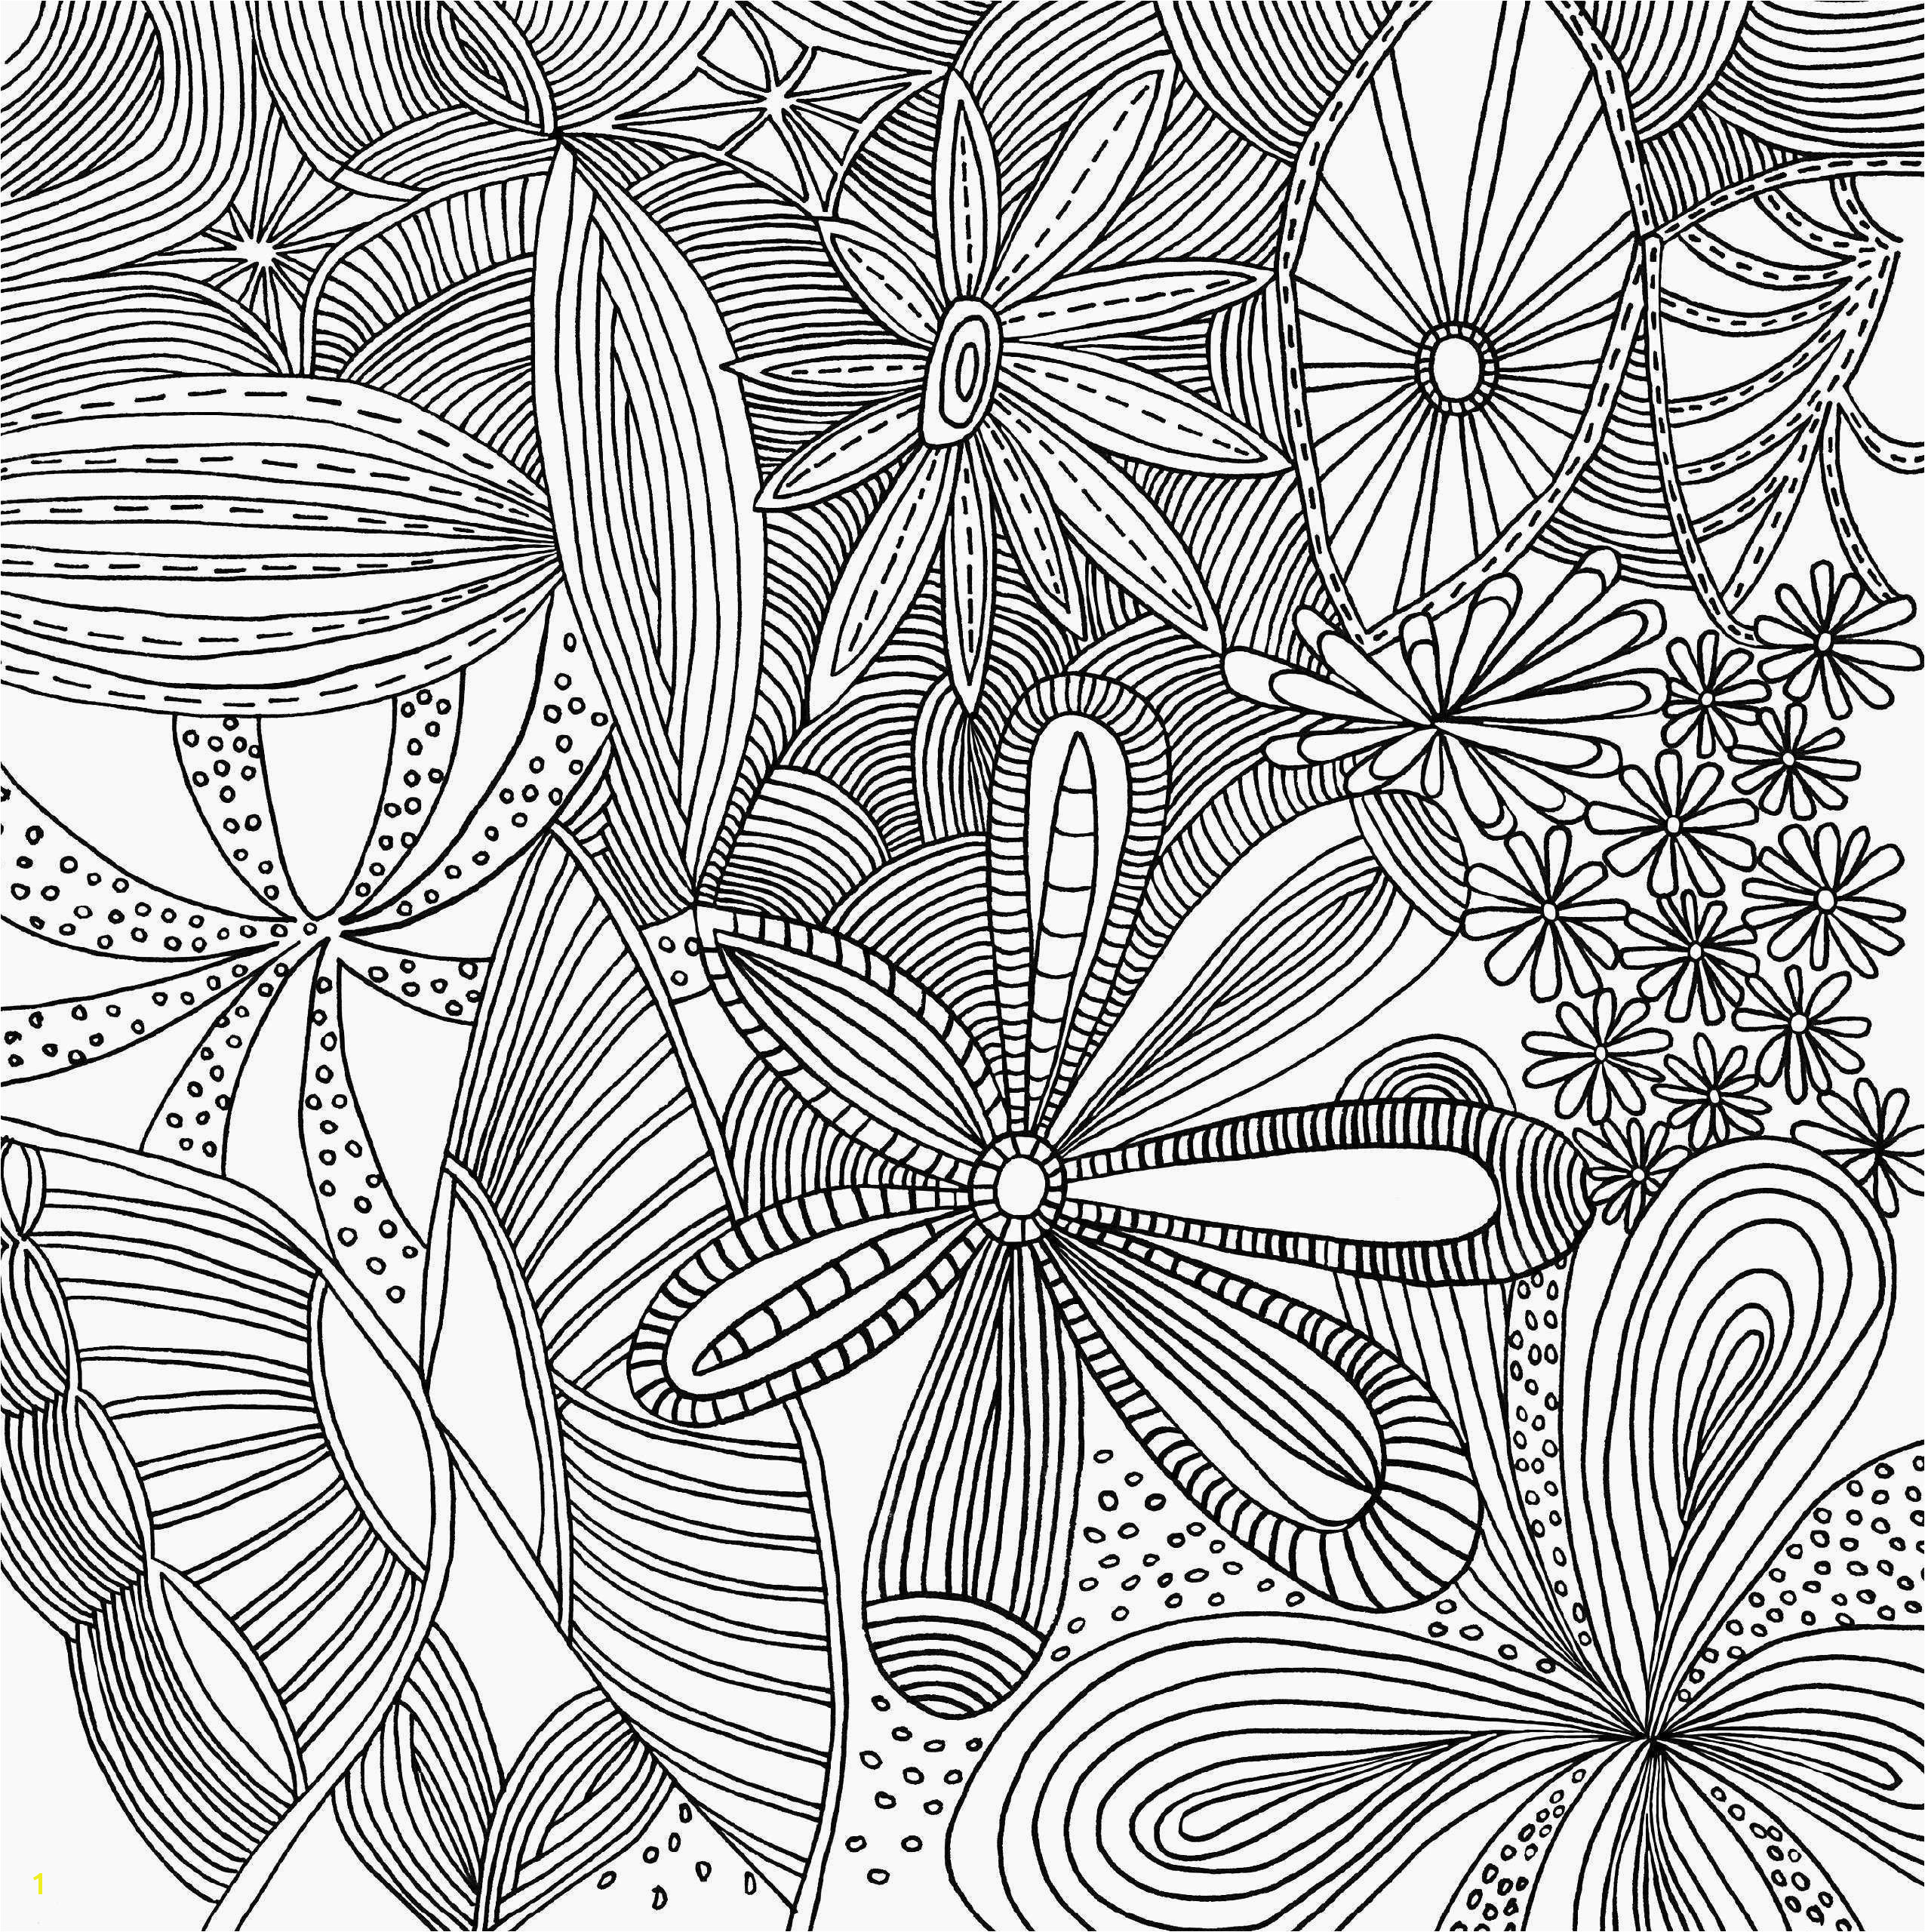 Eclipse Coloring Pages Inspirational Girl Scout Daisy Flower Garden Coloring Pages Free Girl Scout Daisy